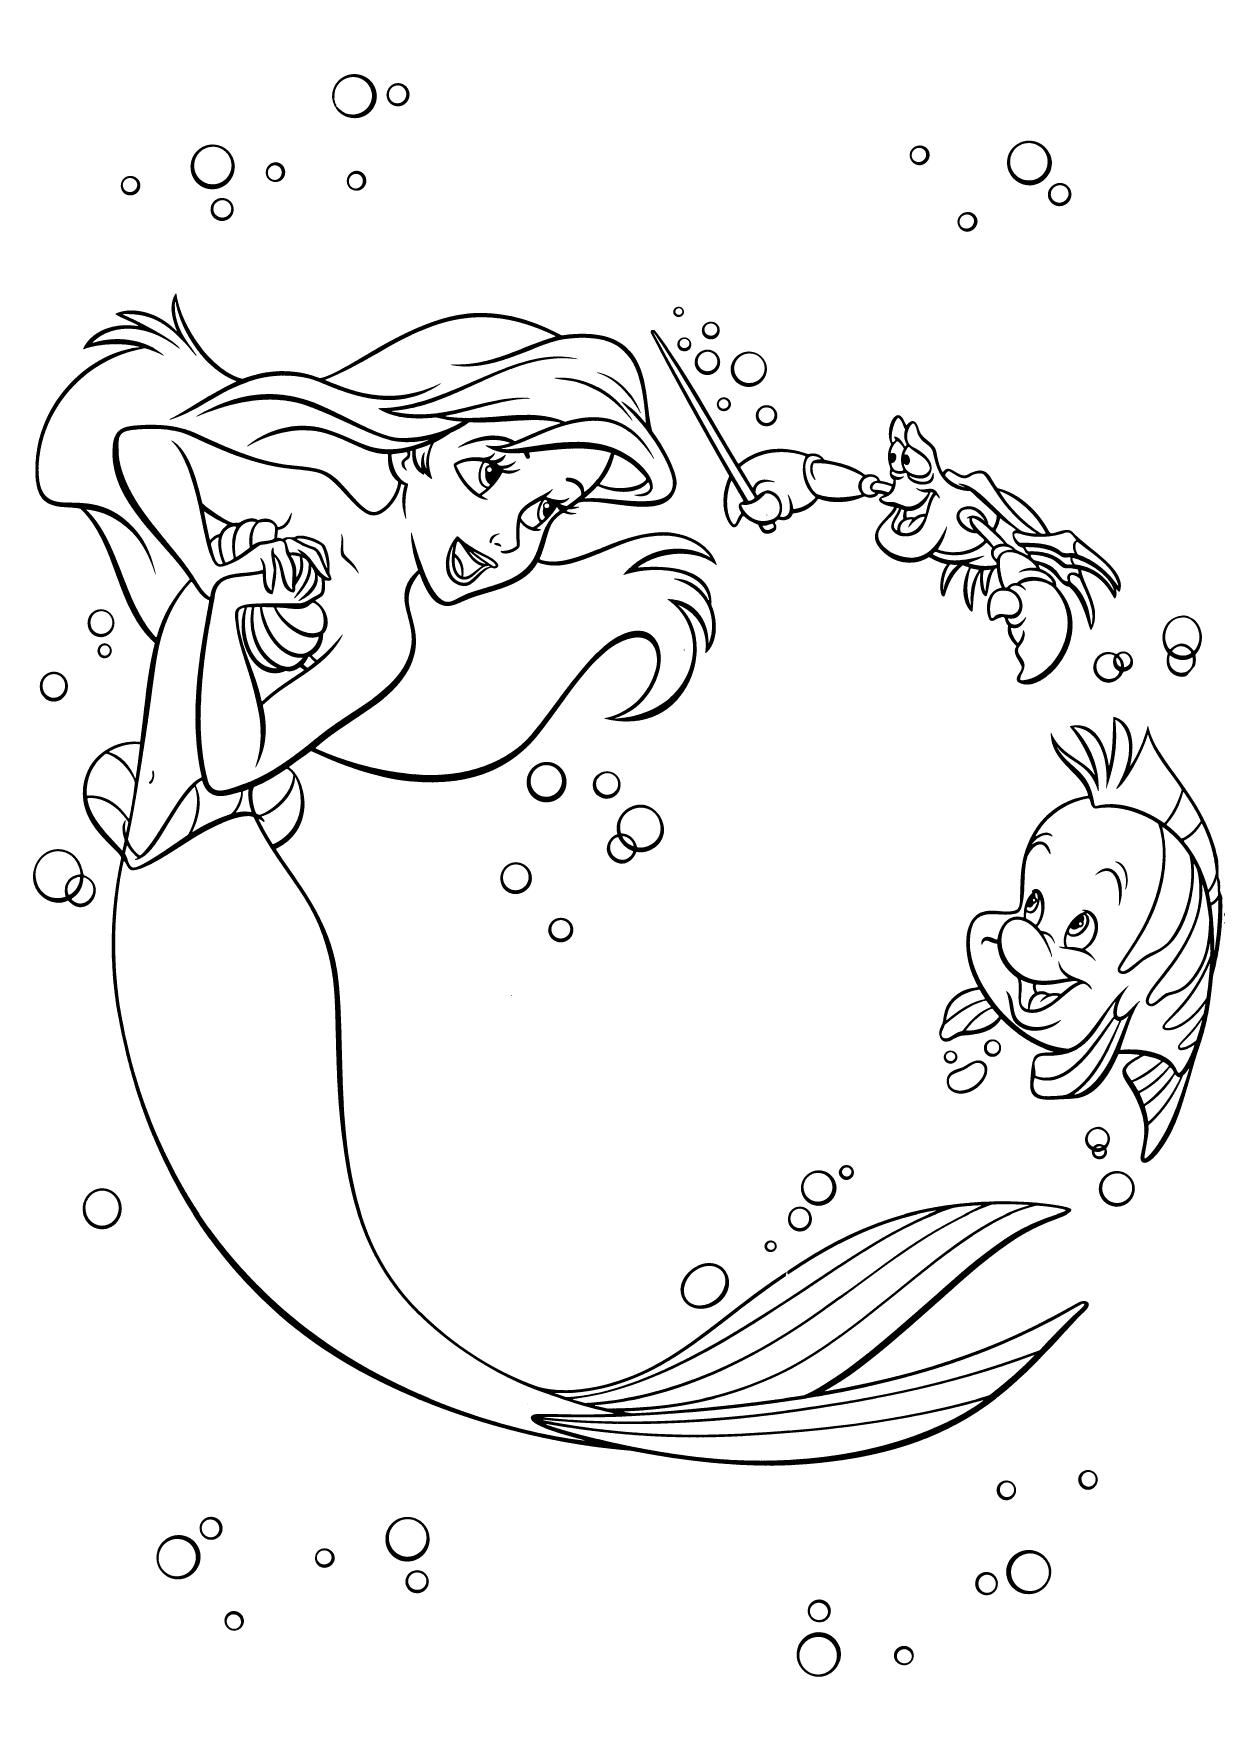 Disney Coloring Book Pdf Free Download Coloring Pages Allow Kids To Accompany The Ariel Coloring Pages Mermaid Coloring Pages Disney Princess Coloring Pages